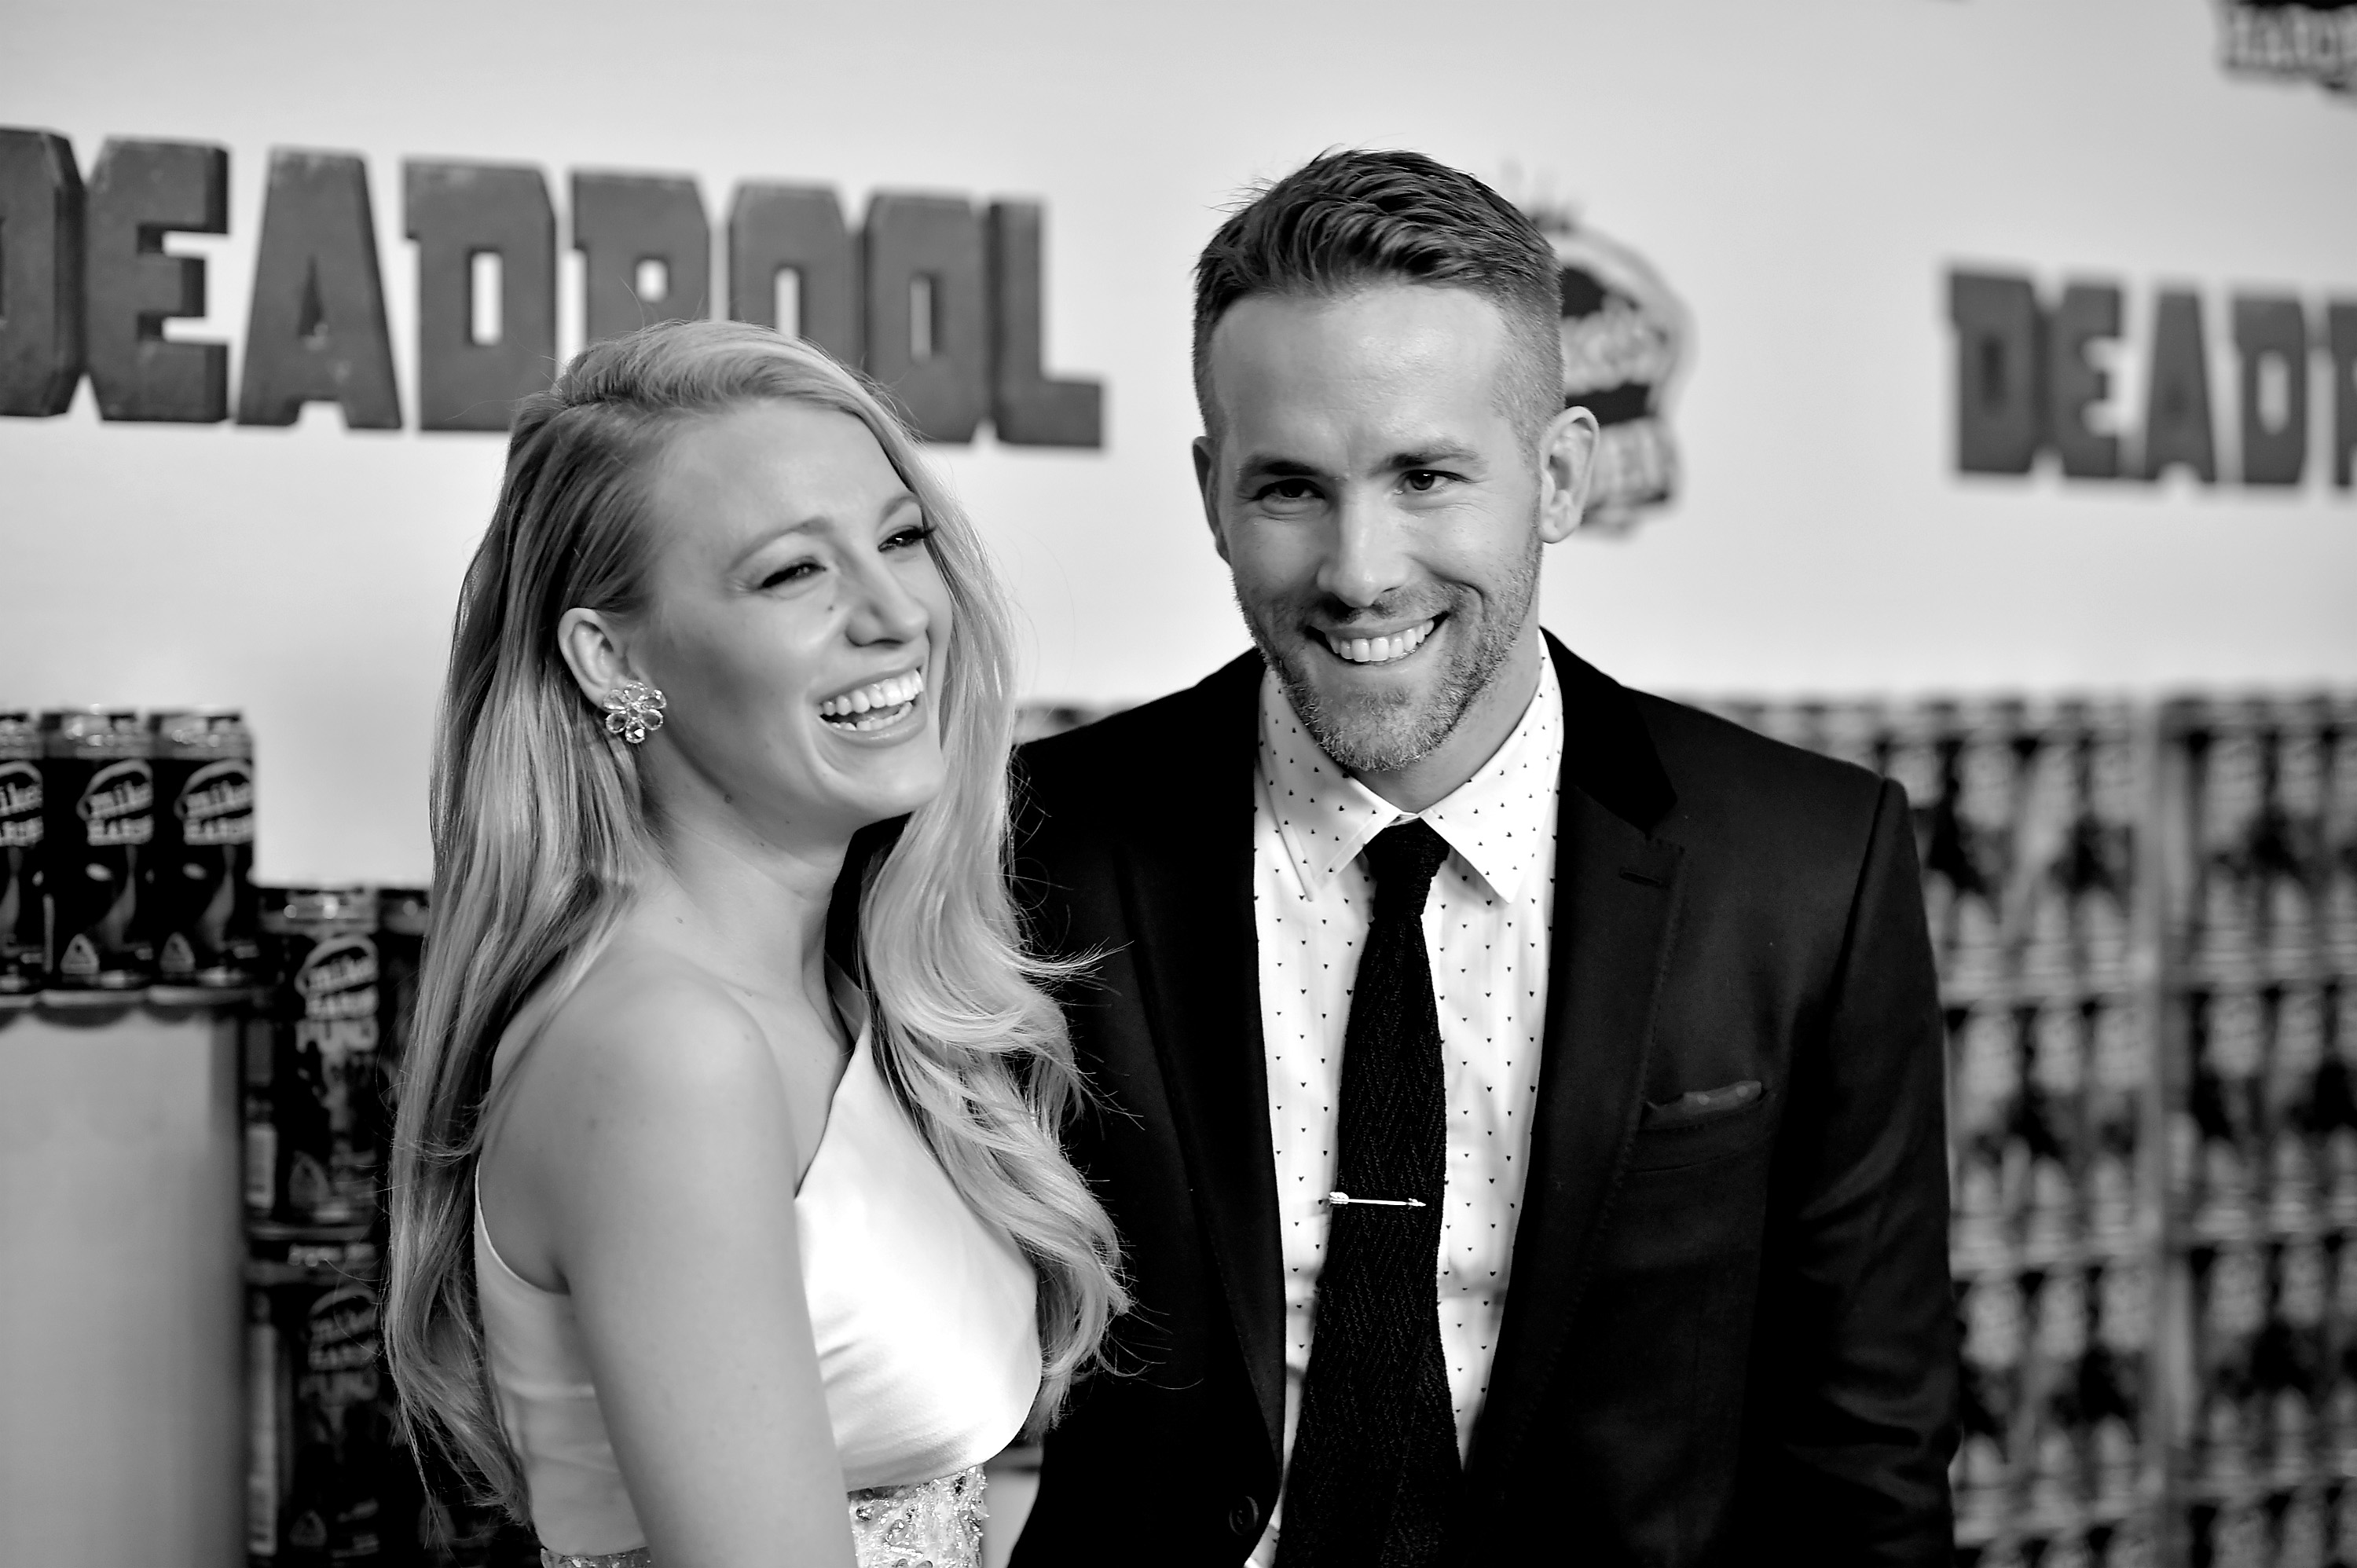 Ryan Reynolds slips up as he refers to 'daughter' in tweet